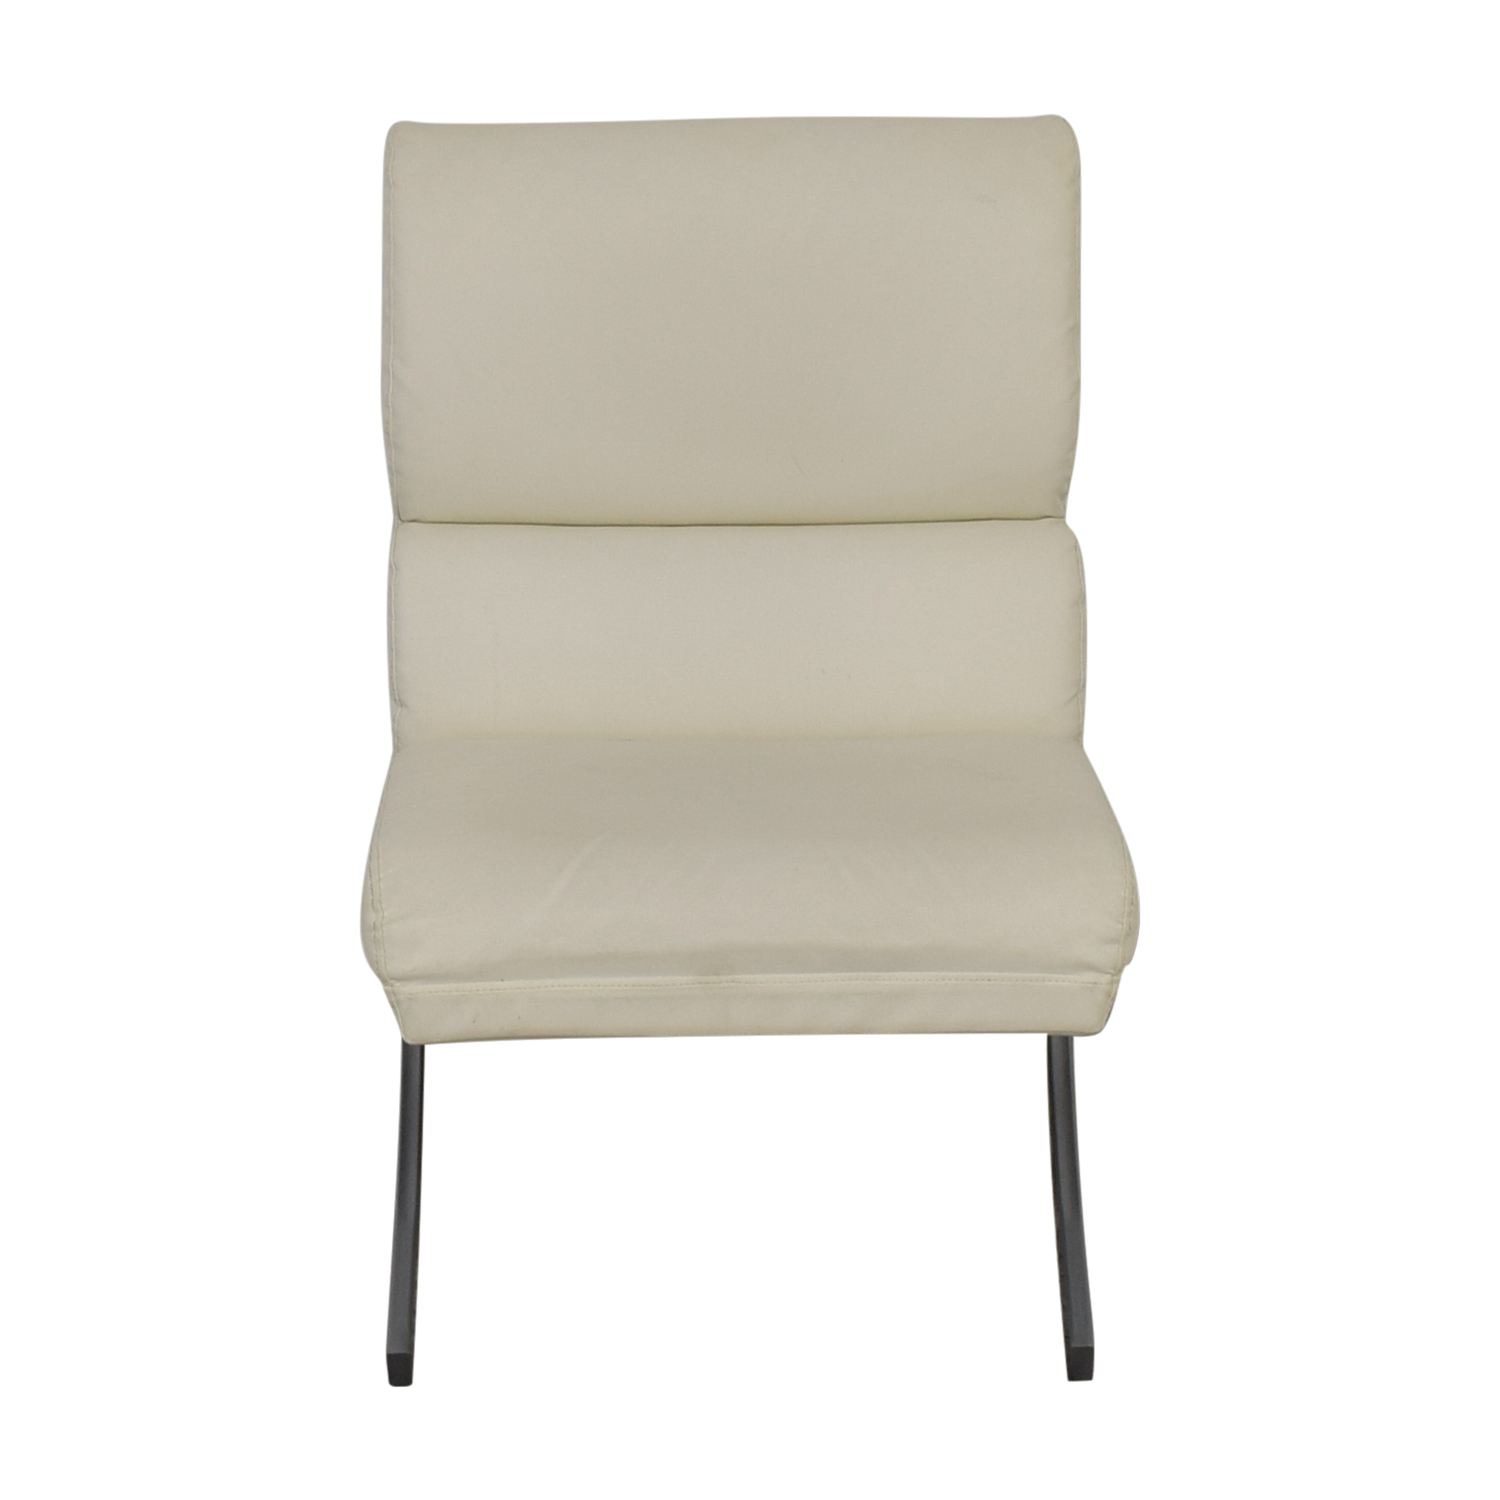 white leather occasional chair 86 off dimensions dimensions white leather accent chair 22000 | dimensions white leather accent chair second hand